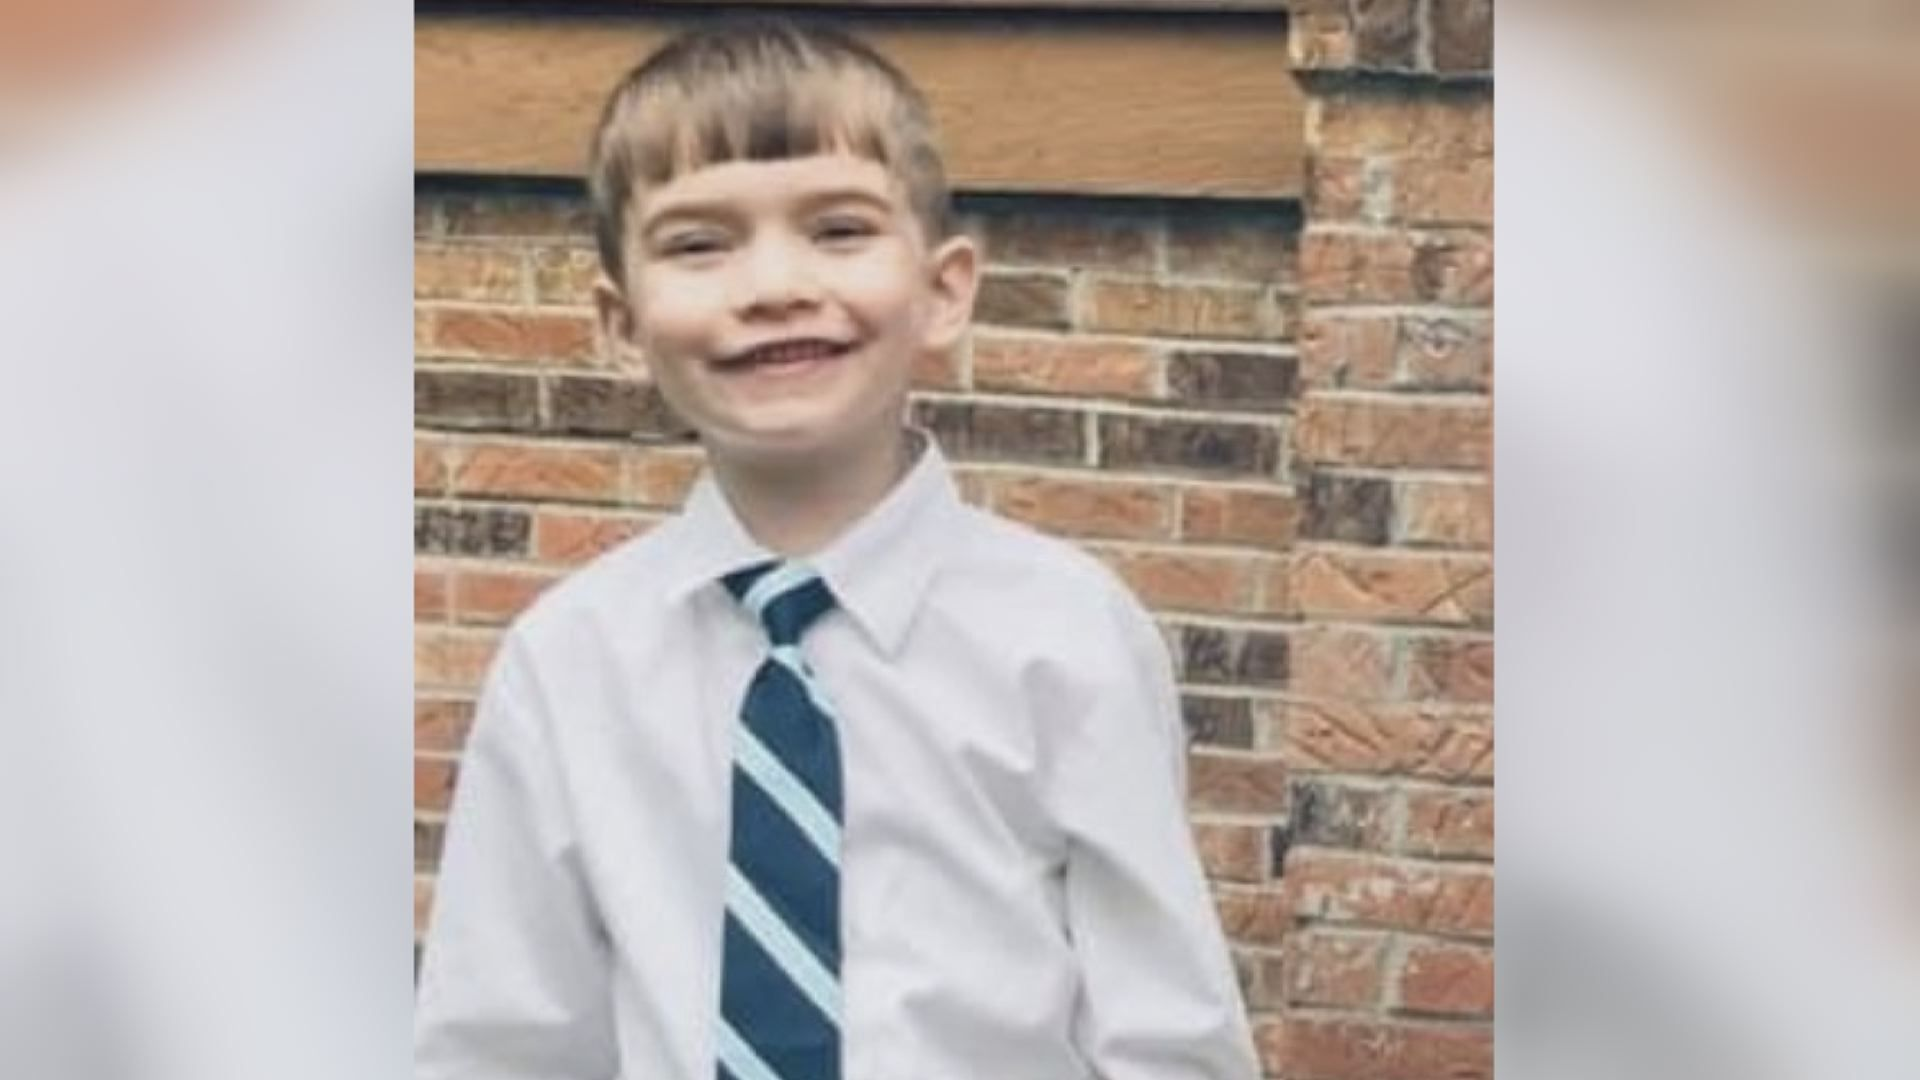 'I should have been taking this serious from day one': 6-year-old tested for COVID-19, mother says